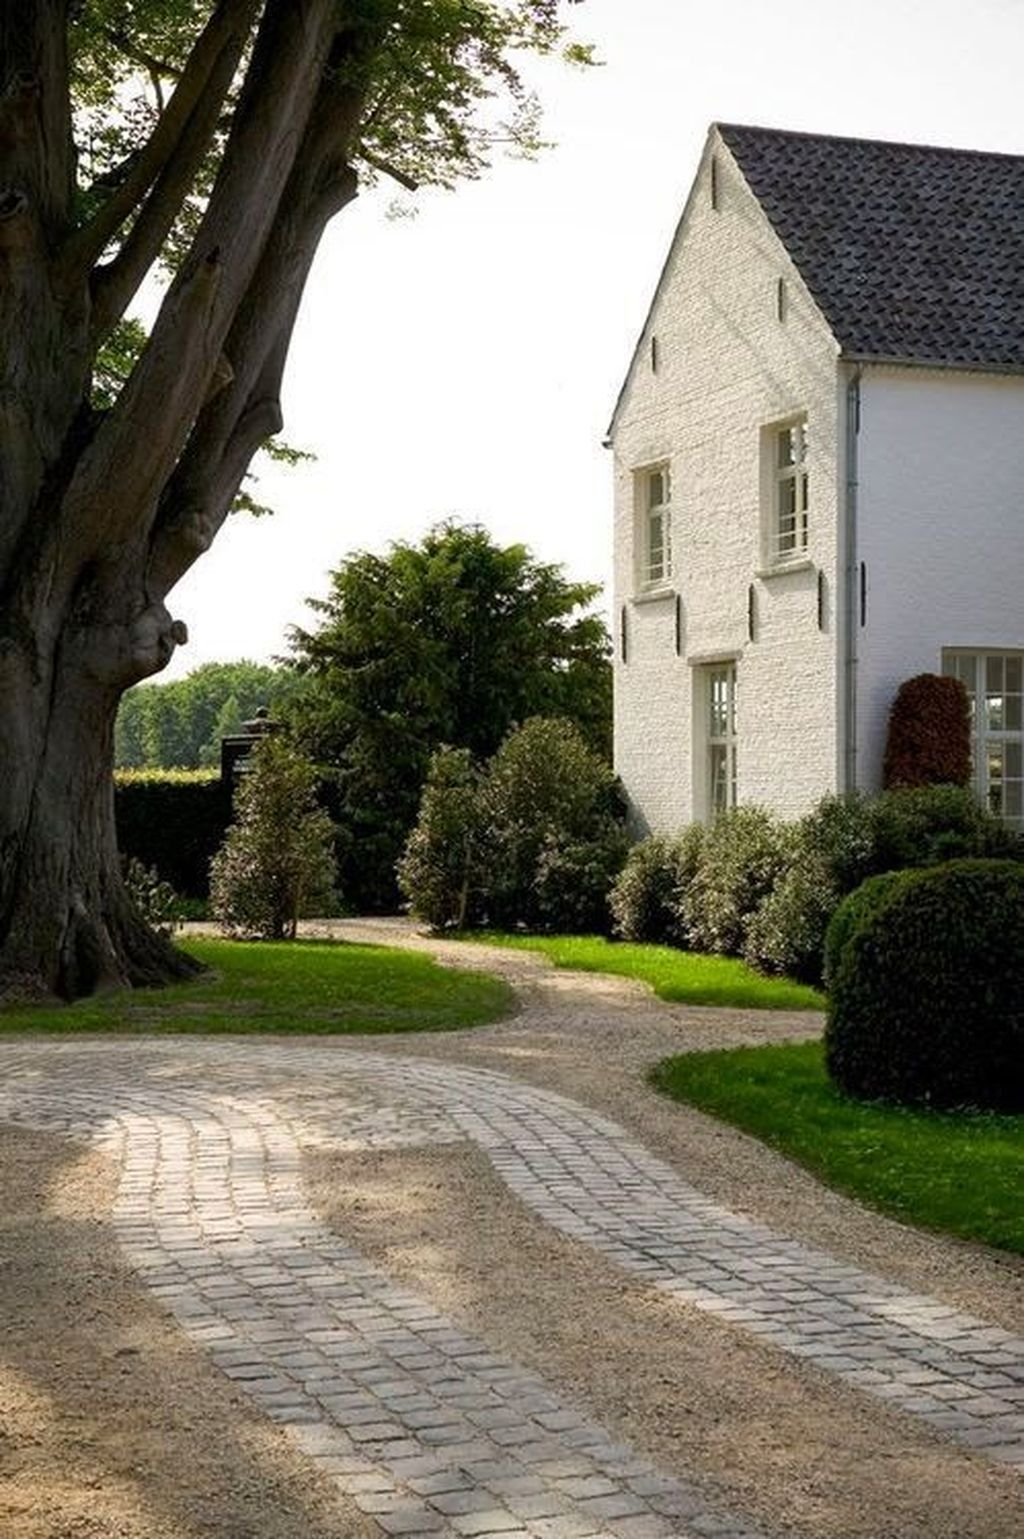 Fabulous Driveway Landscaping Design Ideas For Your Home To Try Asap 12